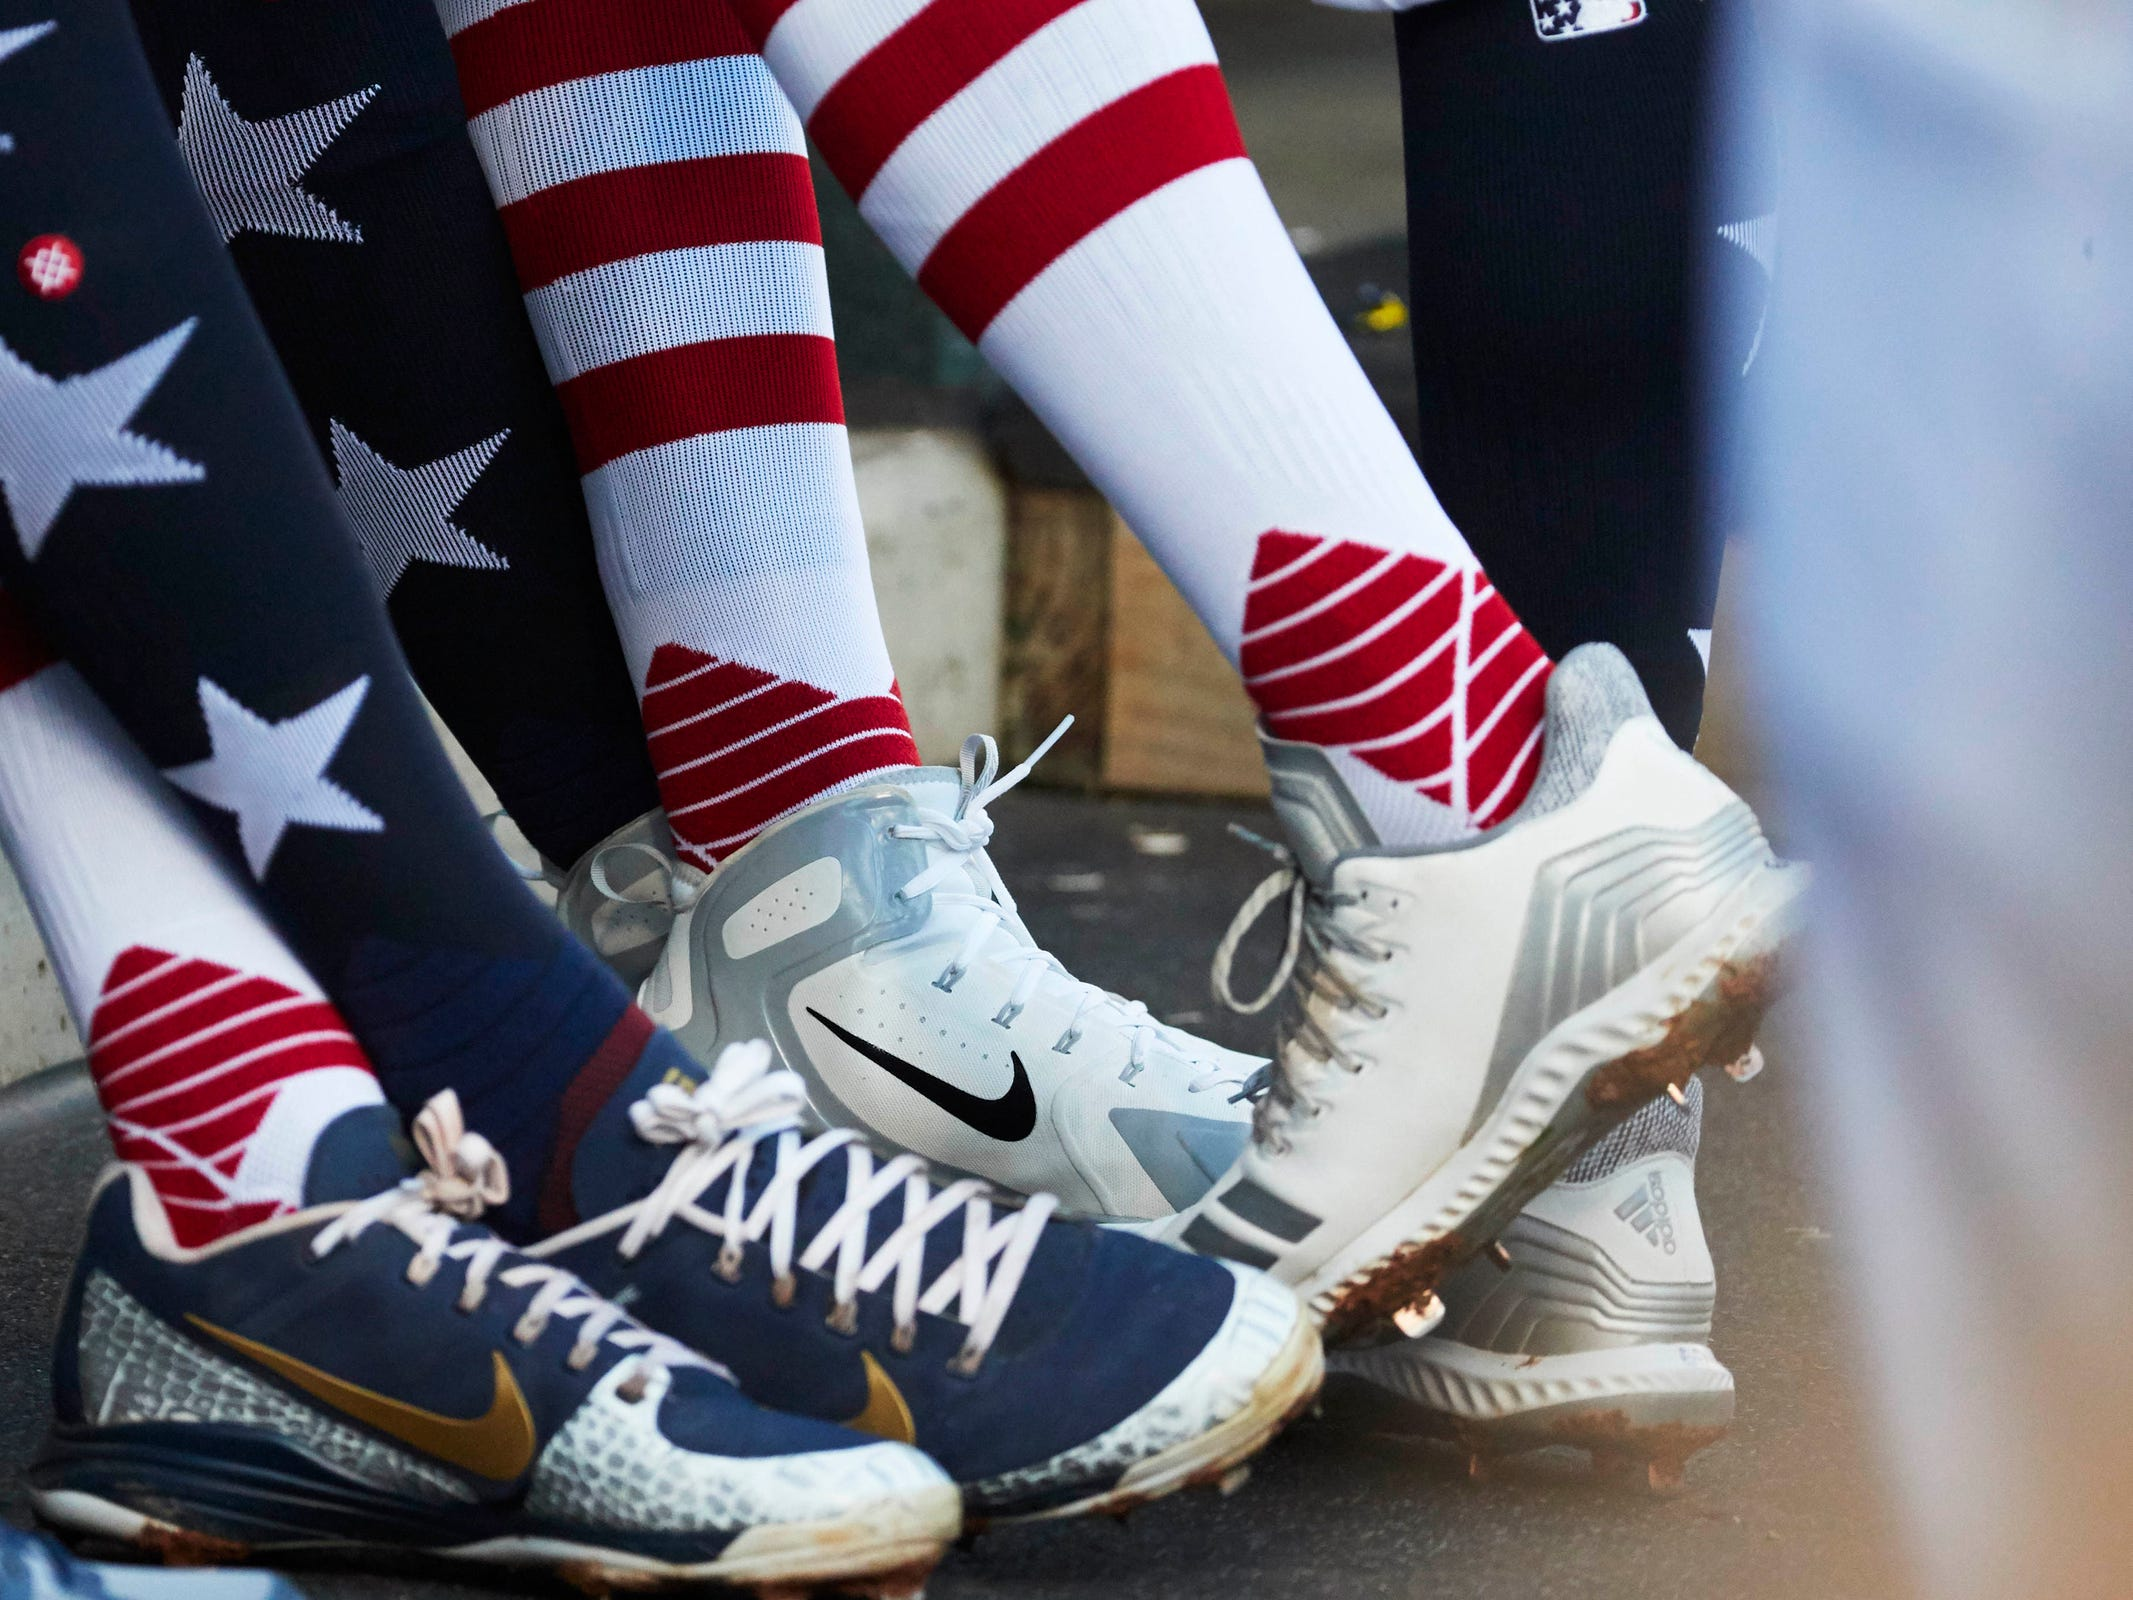 Detroit Tigers players wear stars and stripes socks in the dugout during the first inning against the Houston Astros at Comerica Park, Tuesday, Sept. 11, 2018.